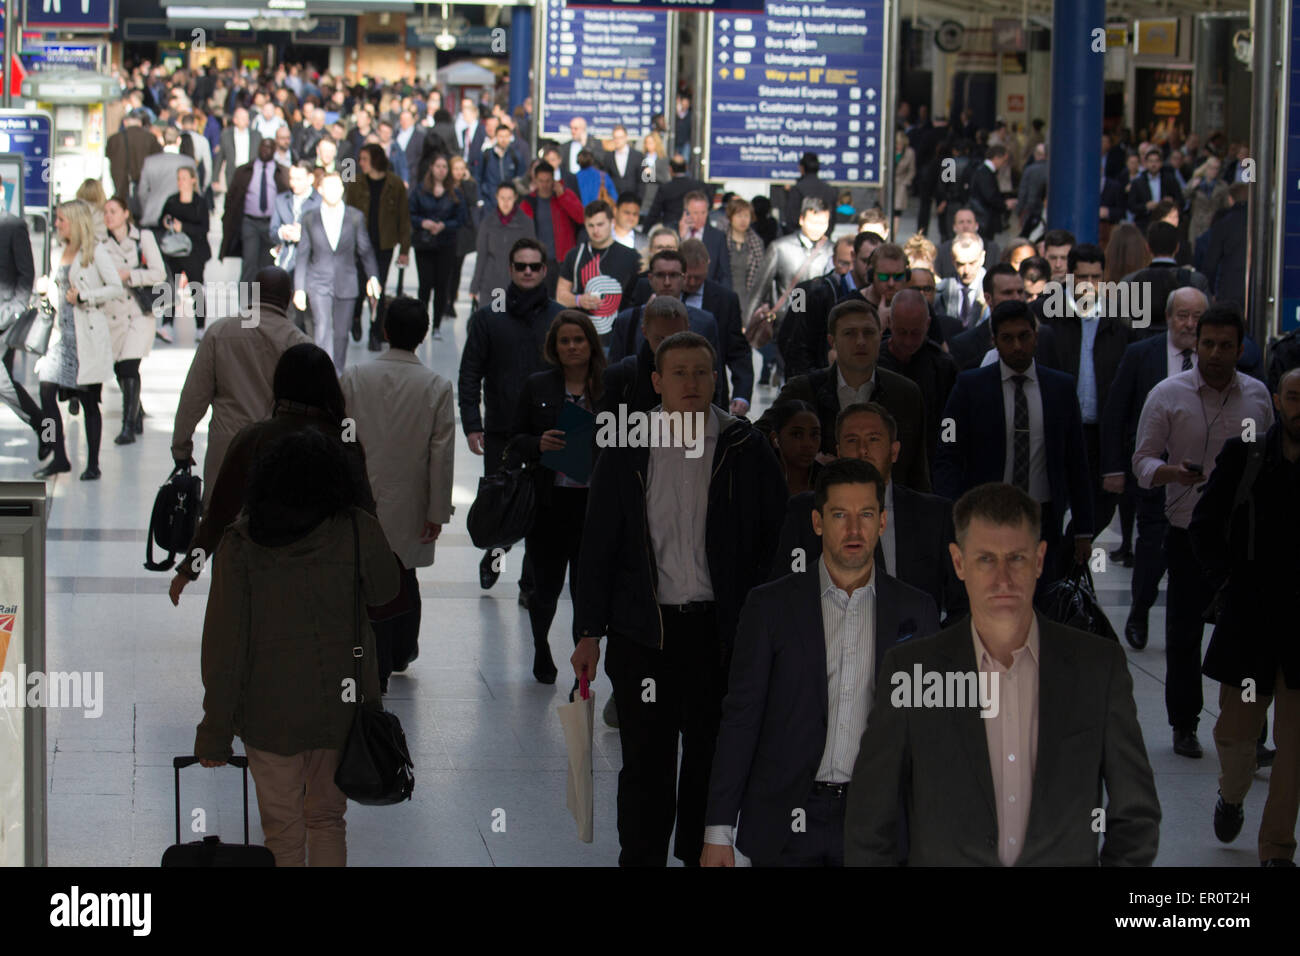 crowds of morning rush hour commuters Liverpool street London - Stock Image